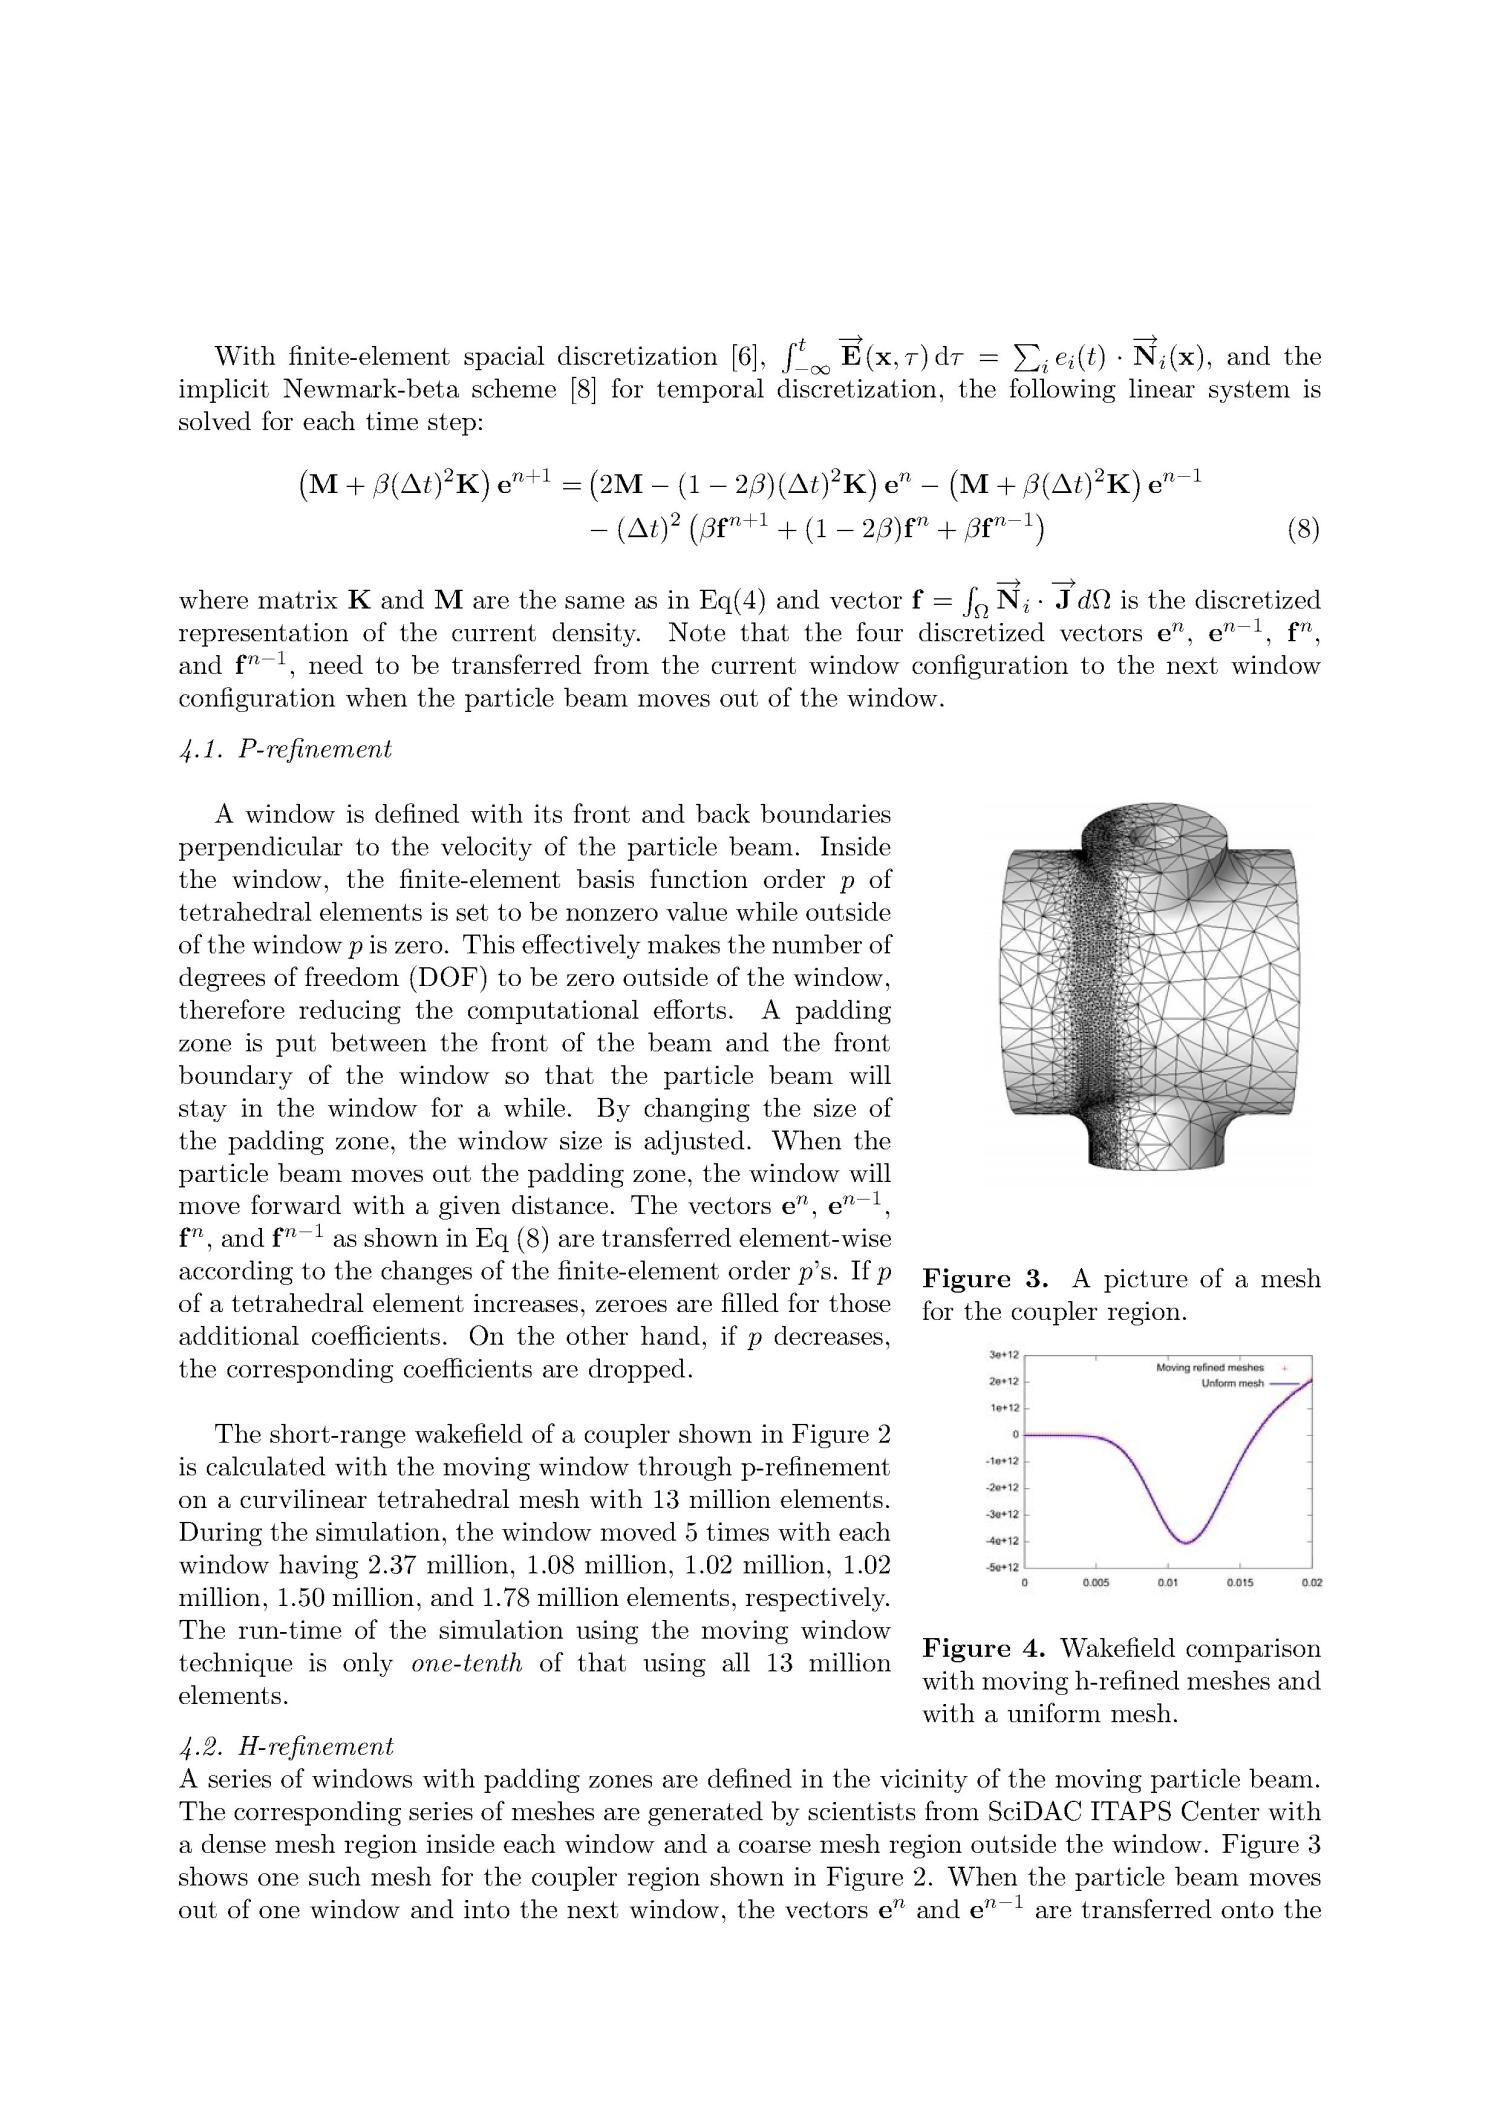 Computational Science Research in Support of Petascale Electromagnetic Modeling                                                                                                      [Sequence #]: 4 of 5